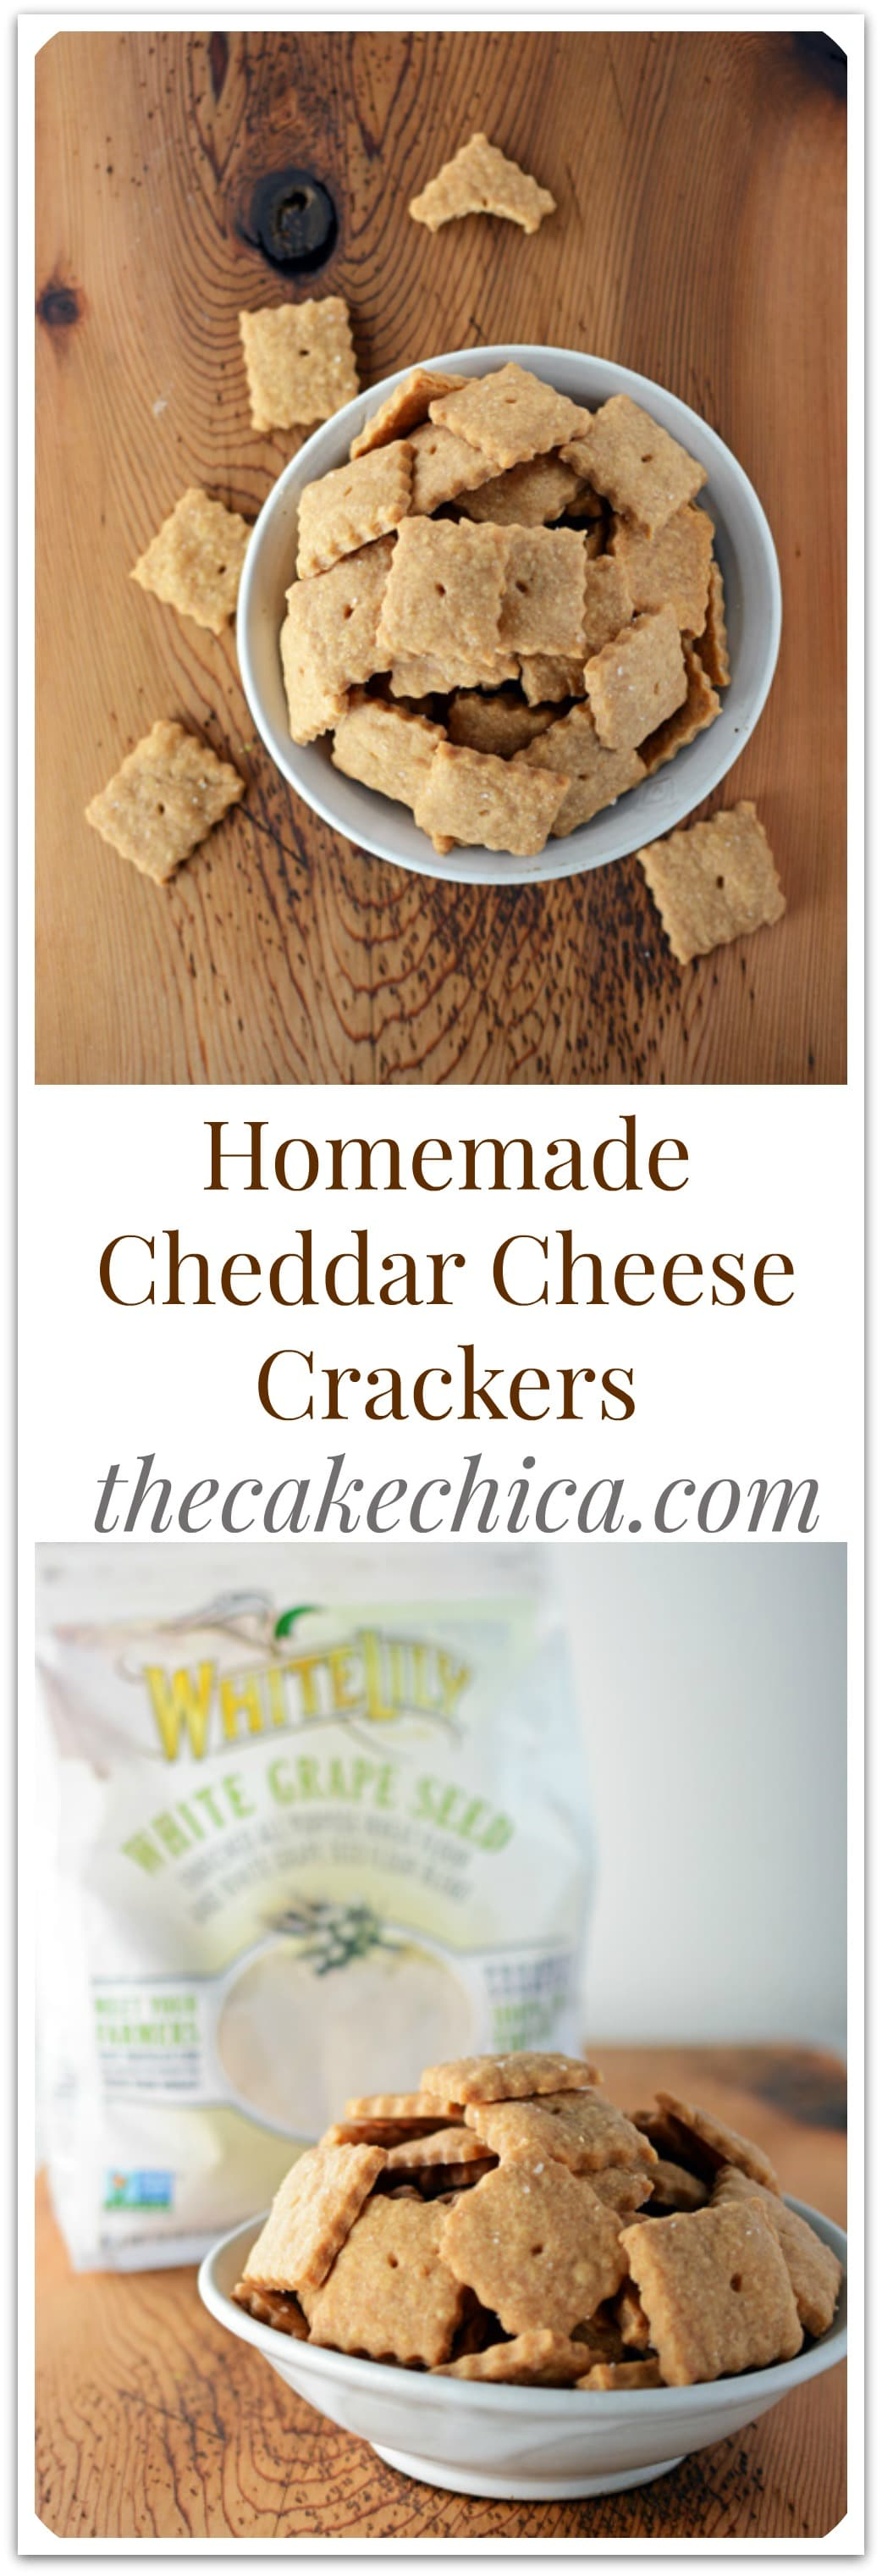 Homemade Cheddar Cheese Crackers for Pinterest